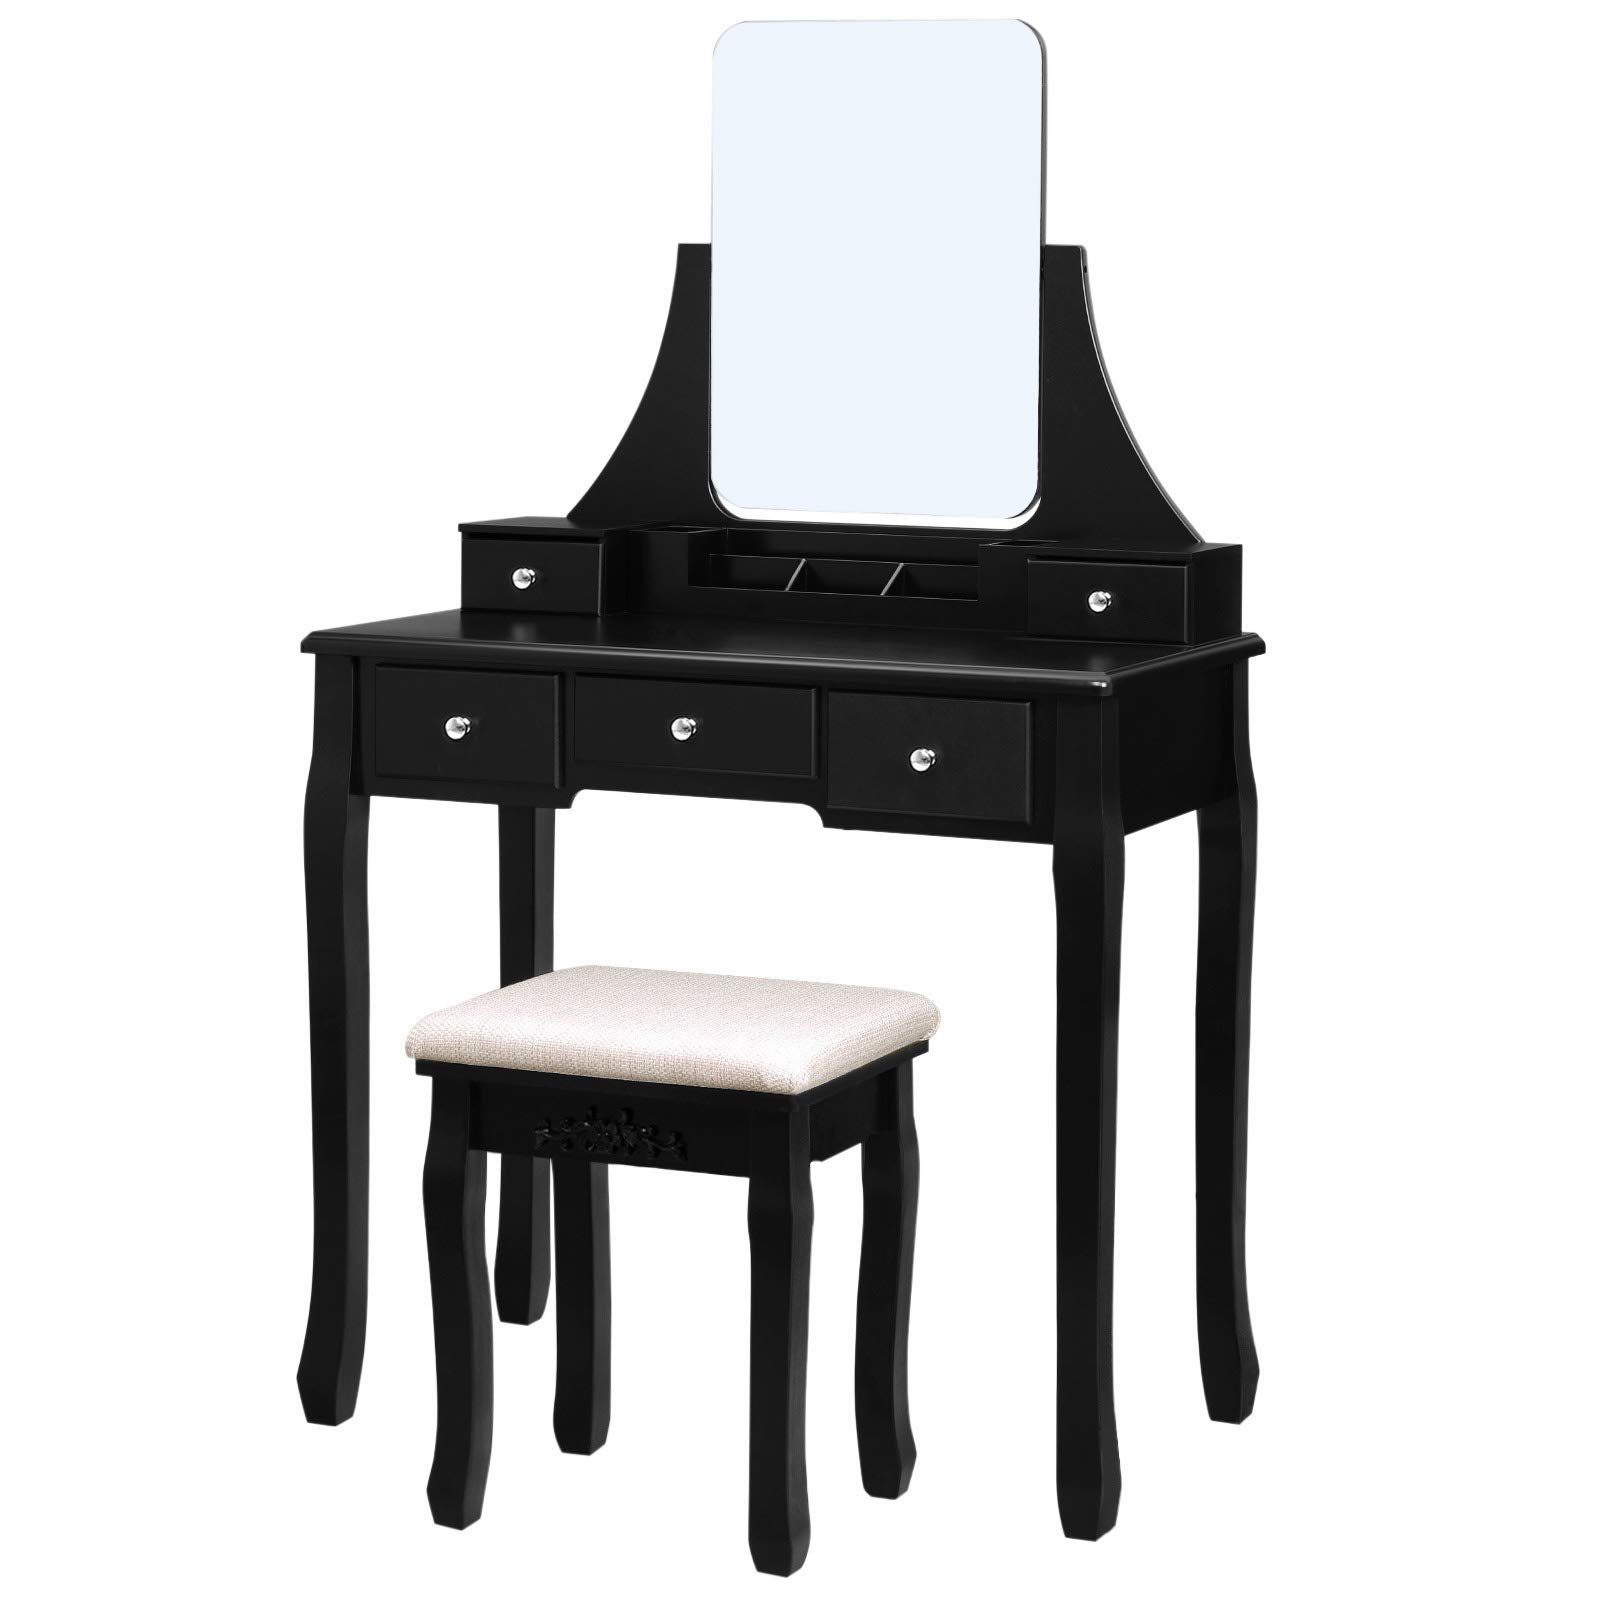 VASAGLE Vanity Table Set with Large Frameless Mirror, Makeup Dressing Table Set for Bedroom, Bathroom, 5 Drawers and 1 Removable Storage Box, Cushioned Stool, Black URDT25BK